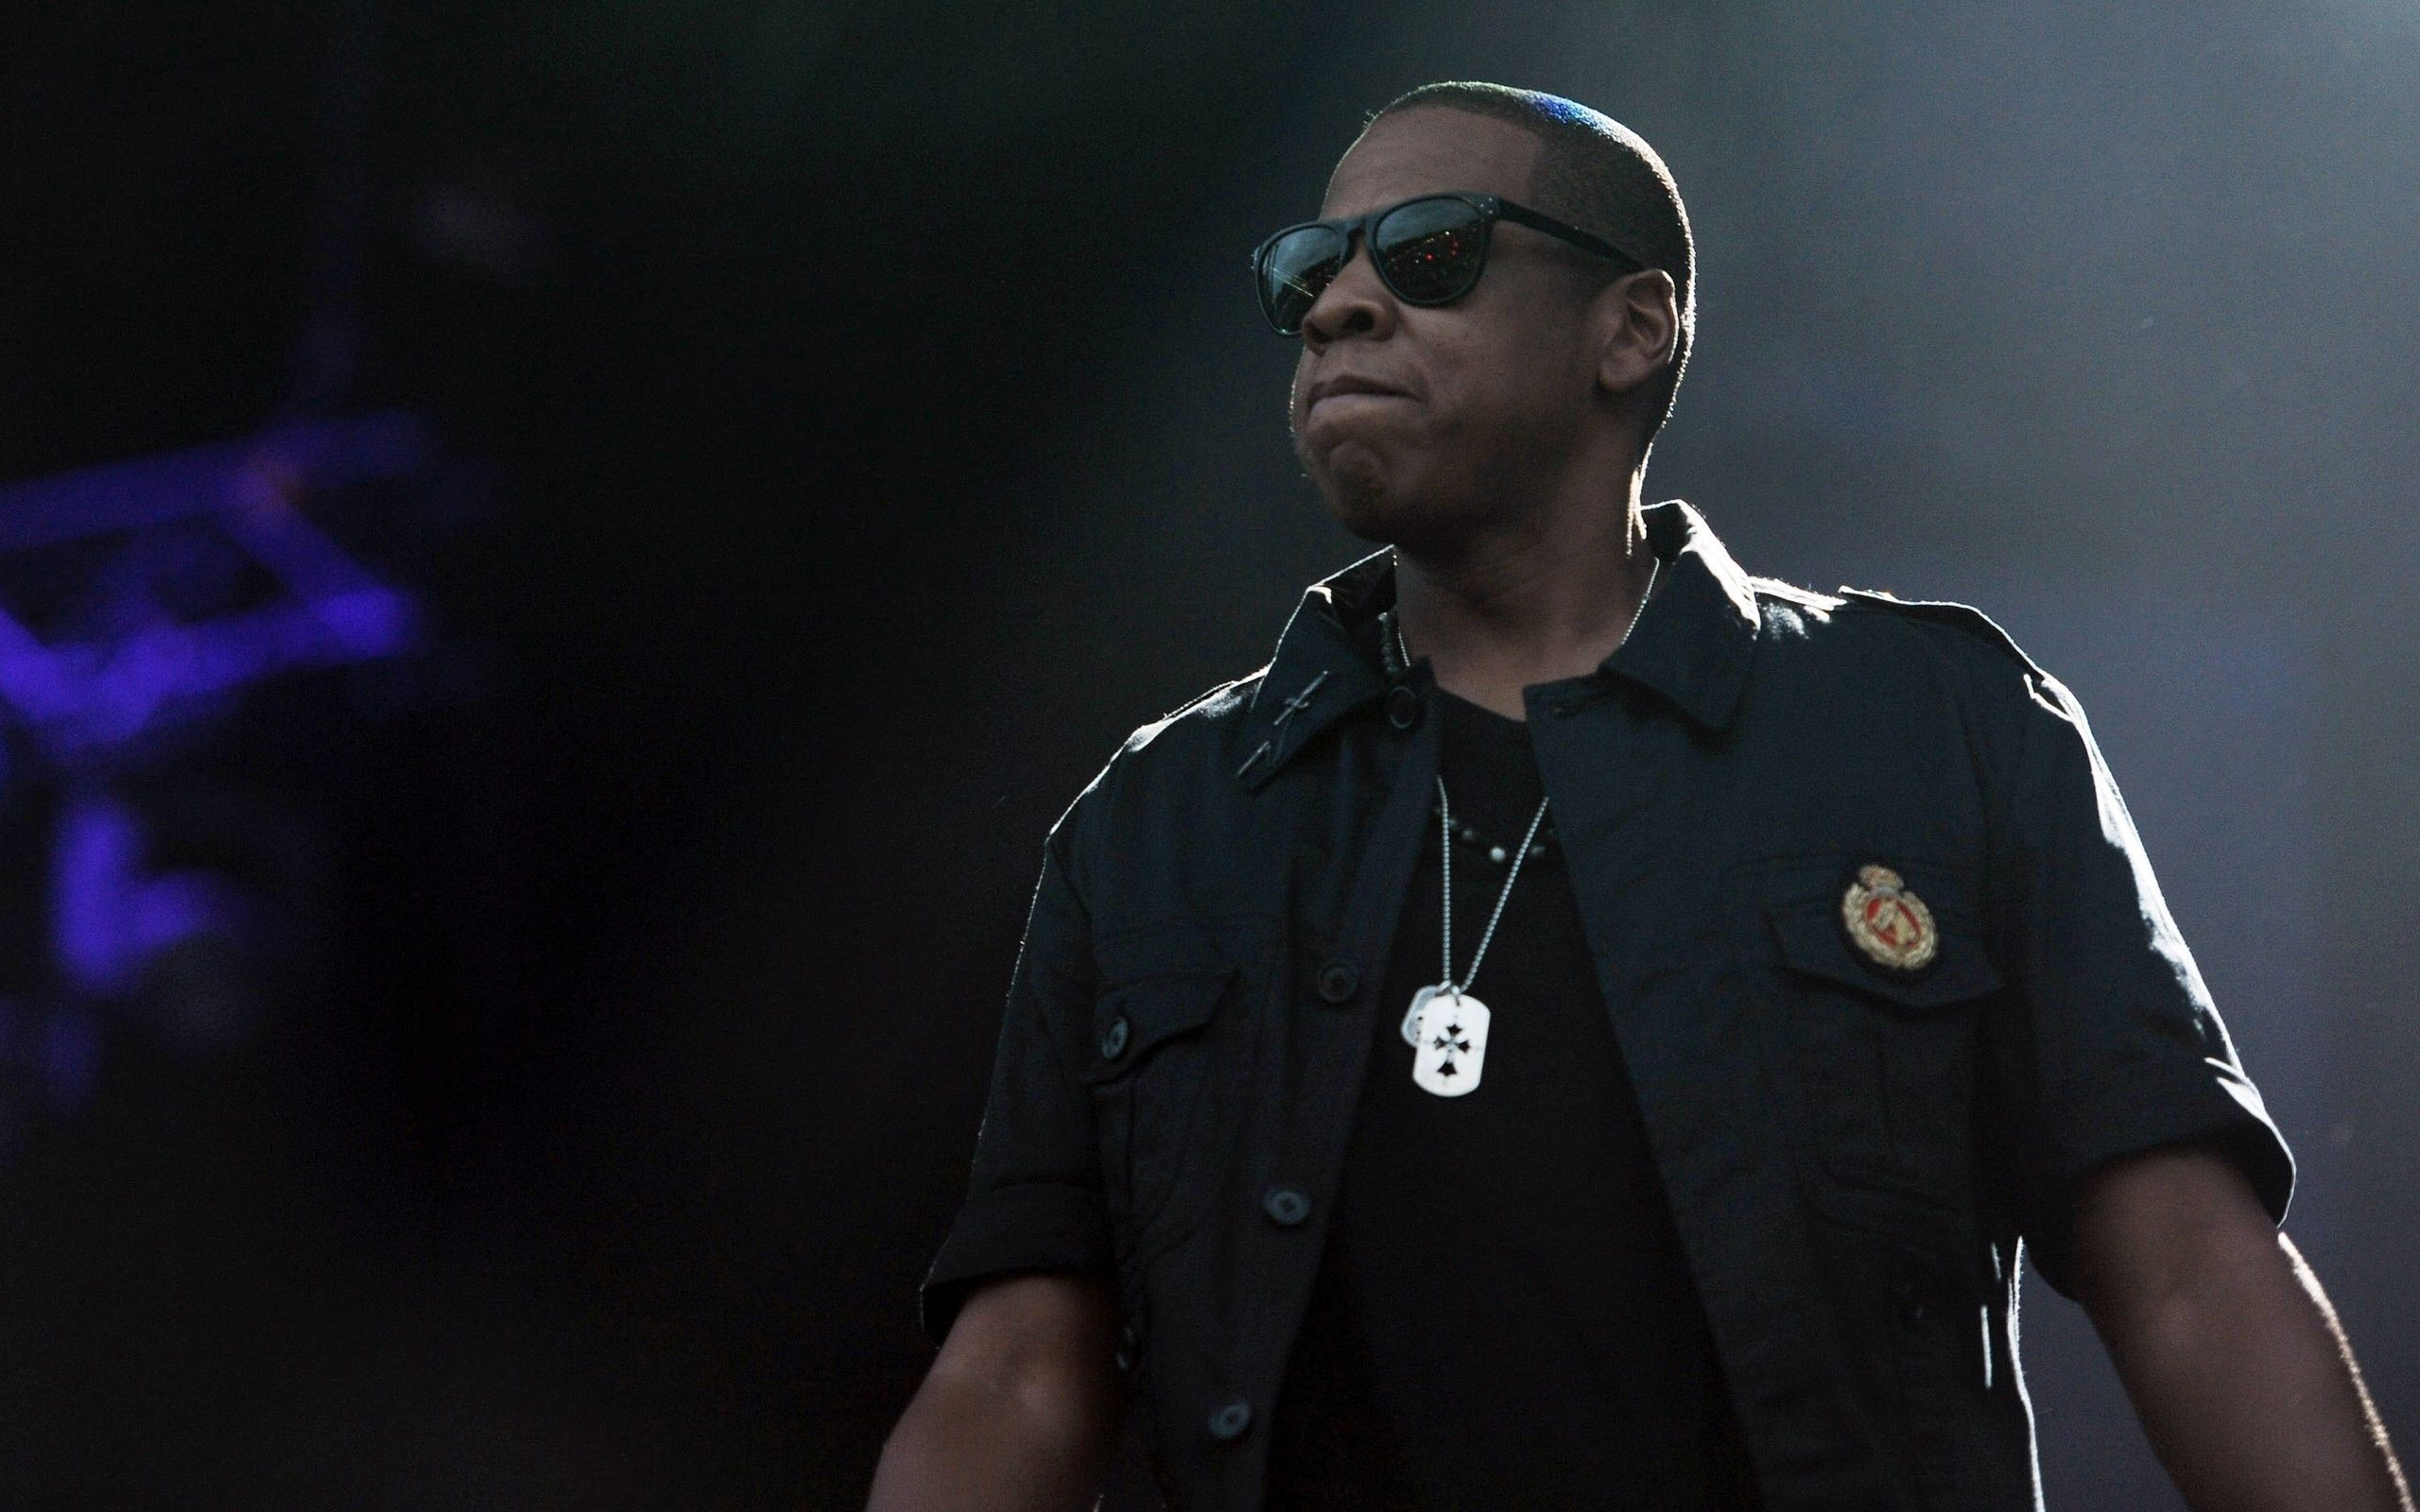 Jay Z Wallpapers Jay Z Widescreen